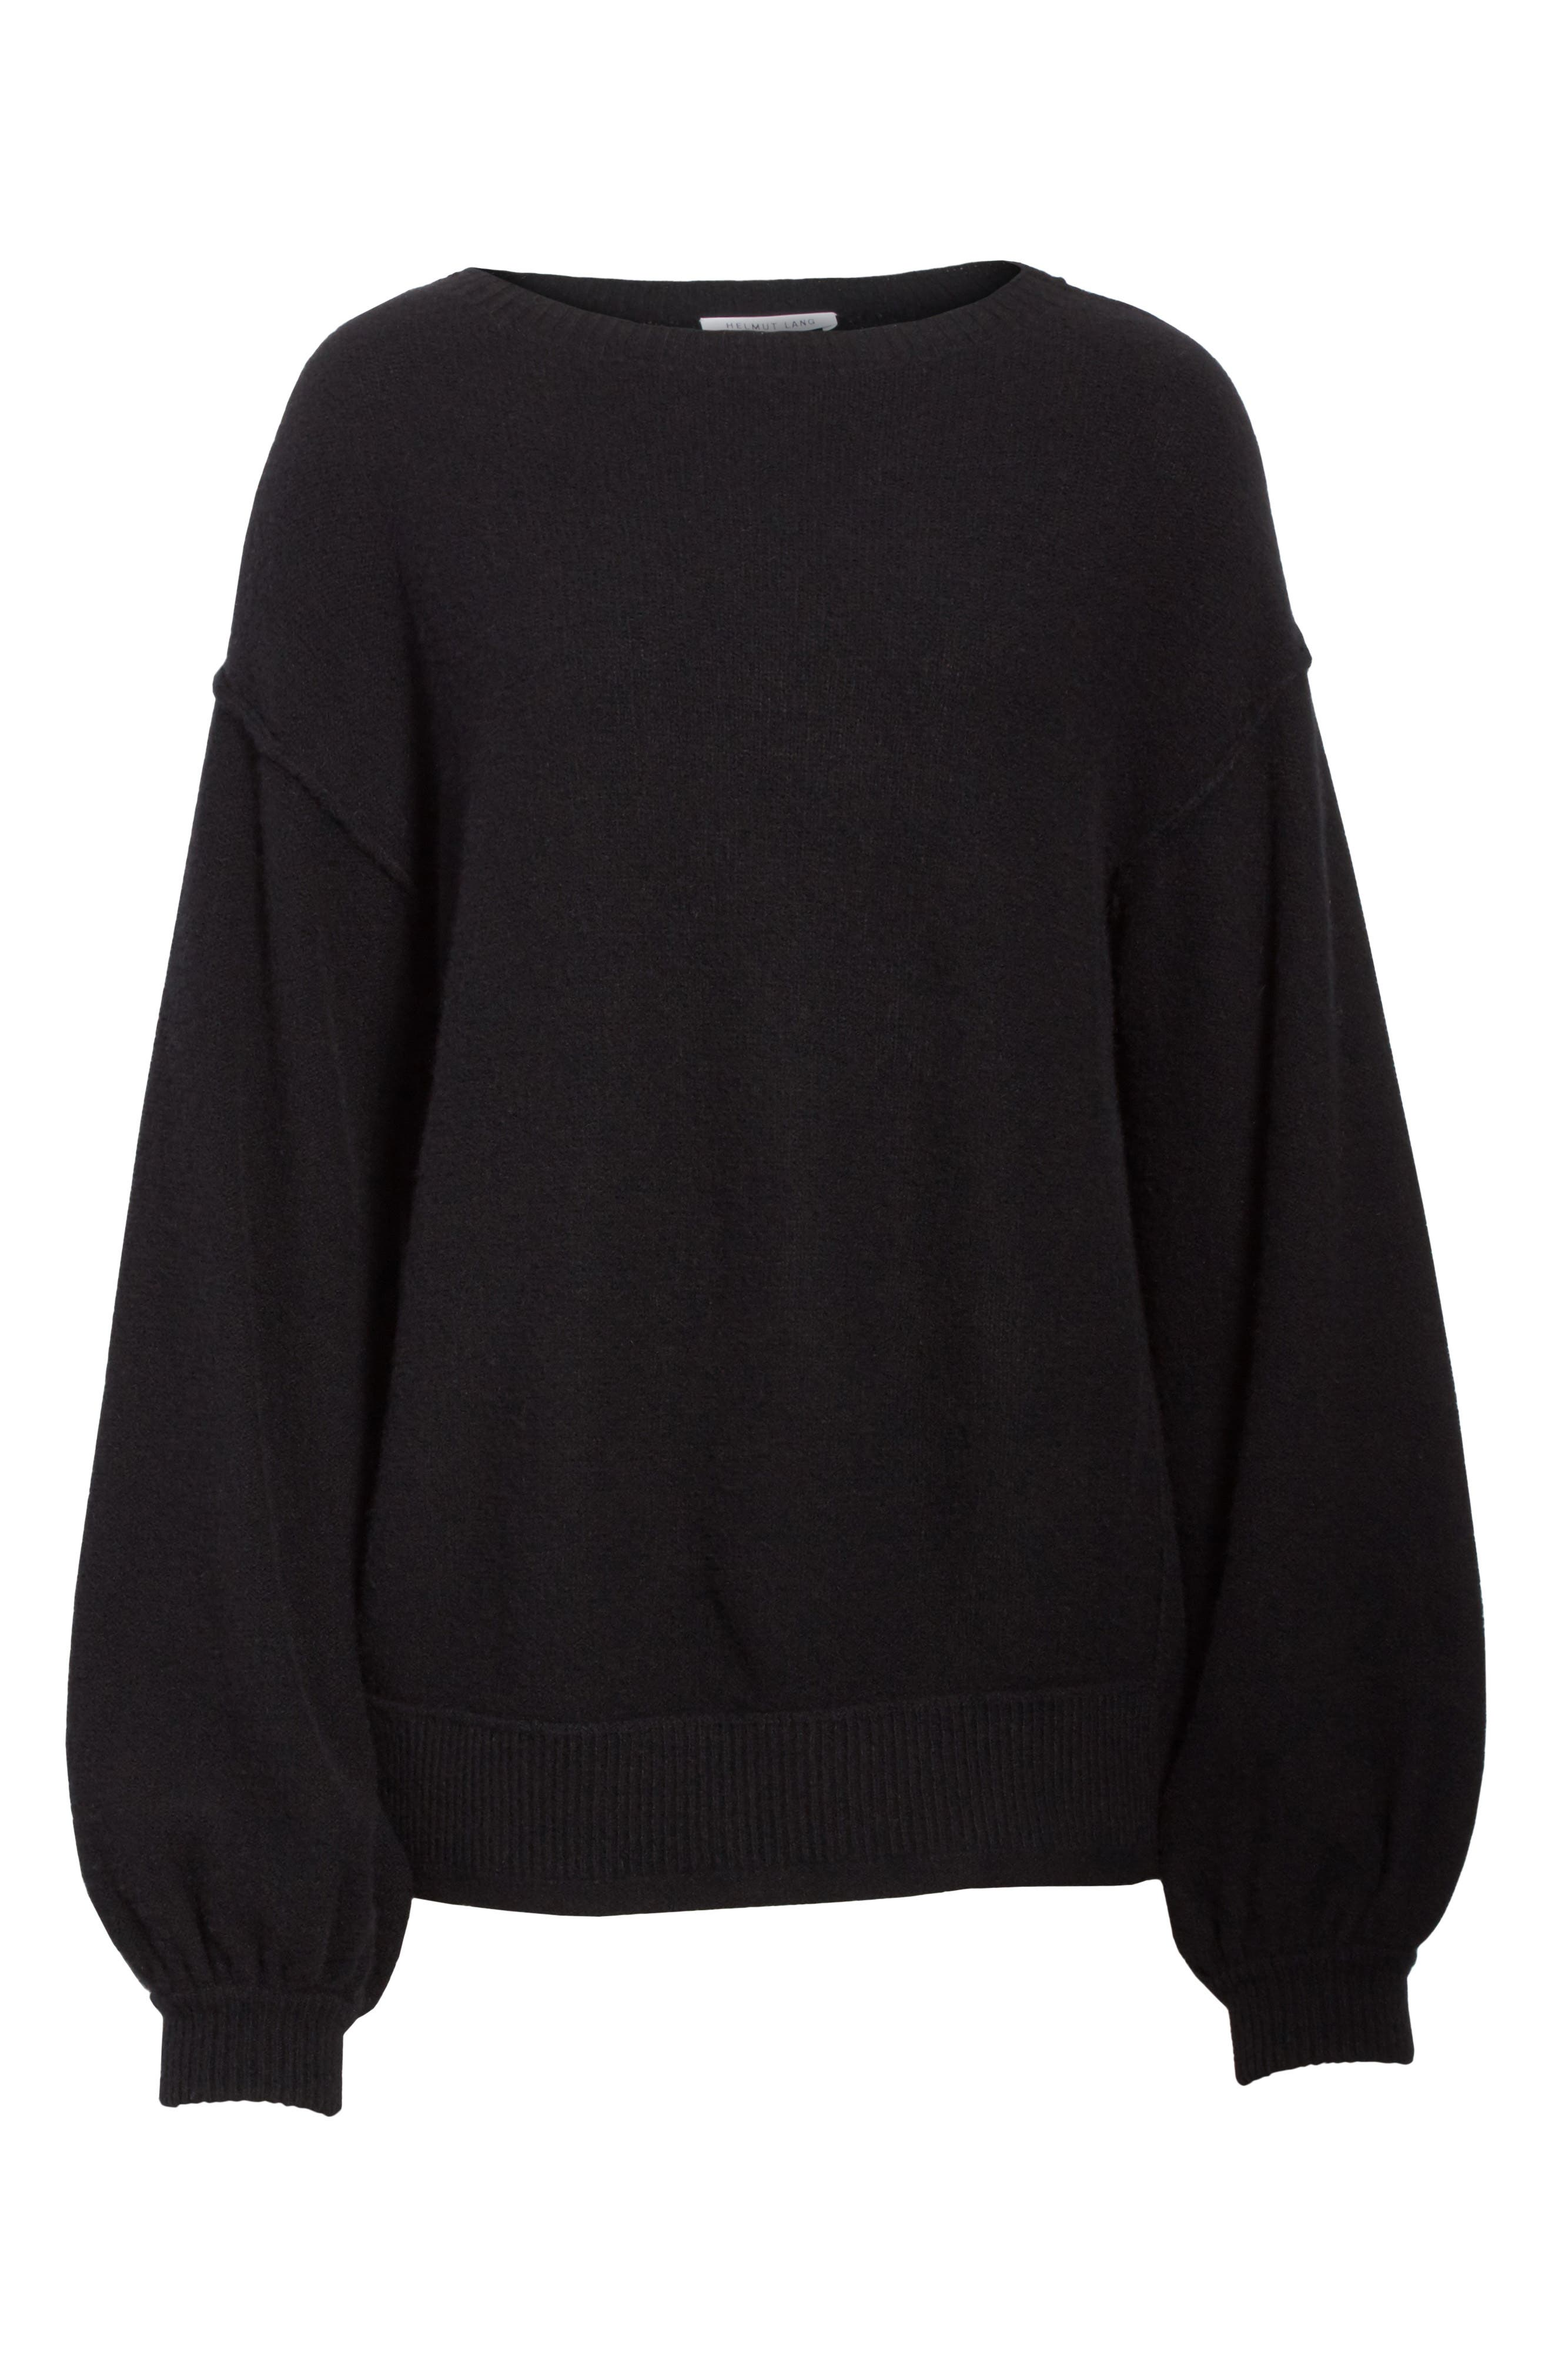 Balloon Sleeve Wool & Cashmere Sweater,                             Alternate thumbnail 6, color,                             001